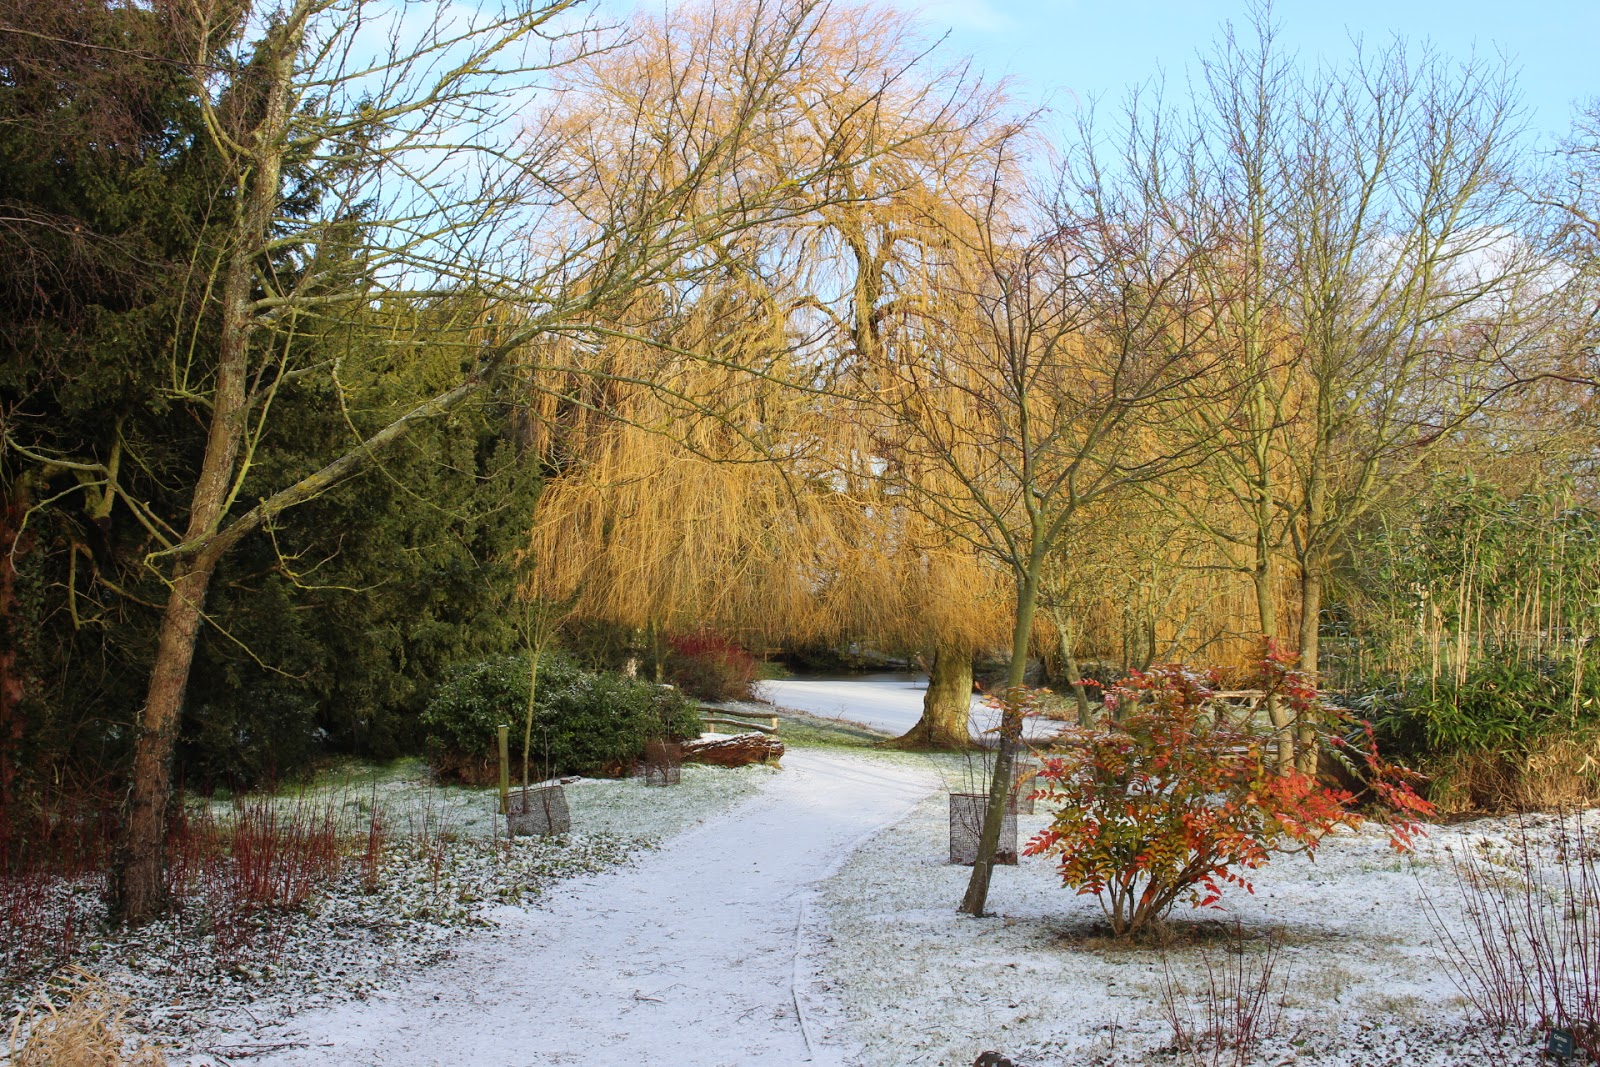 Winter Gardens - willow tree at Hodsock Priory